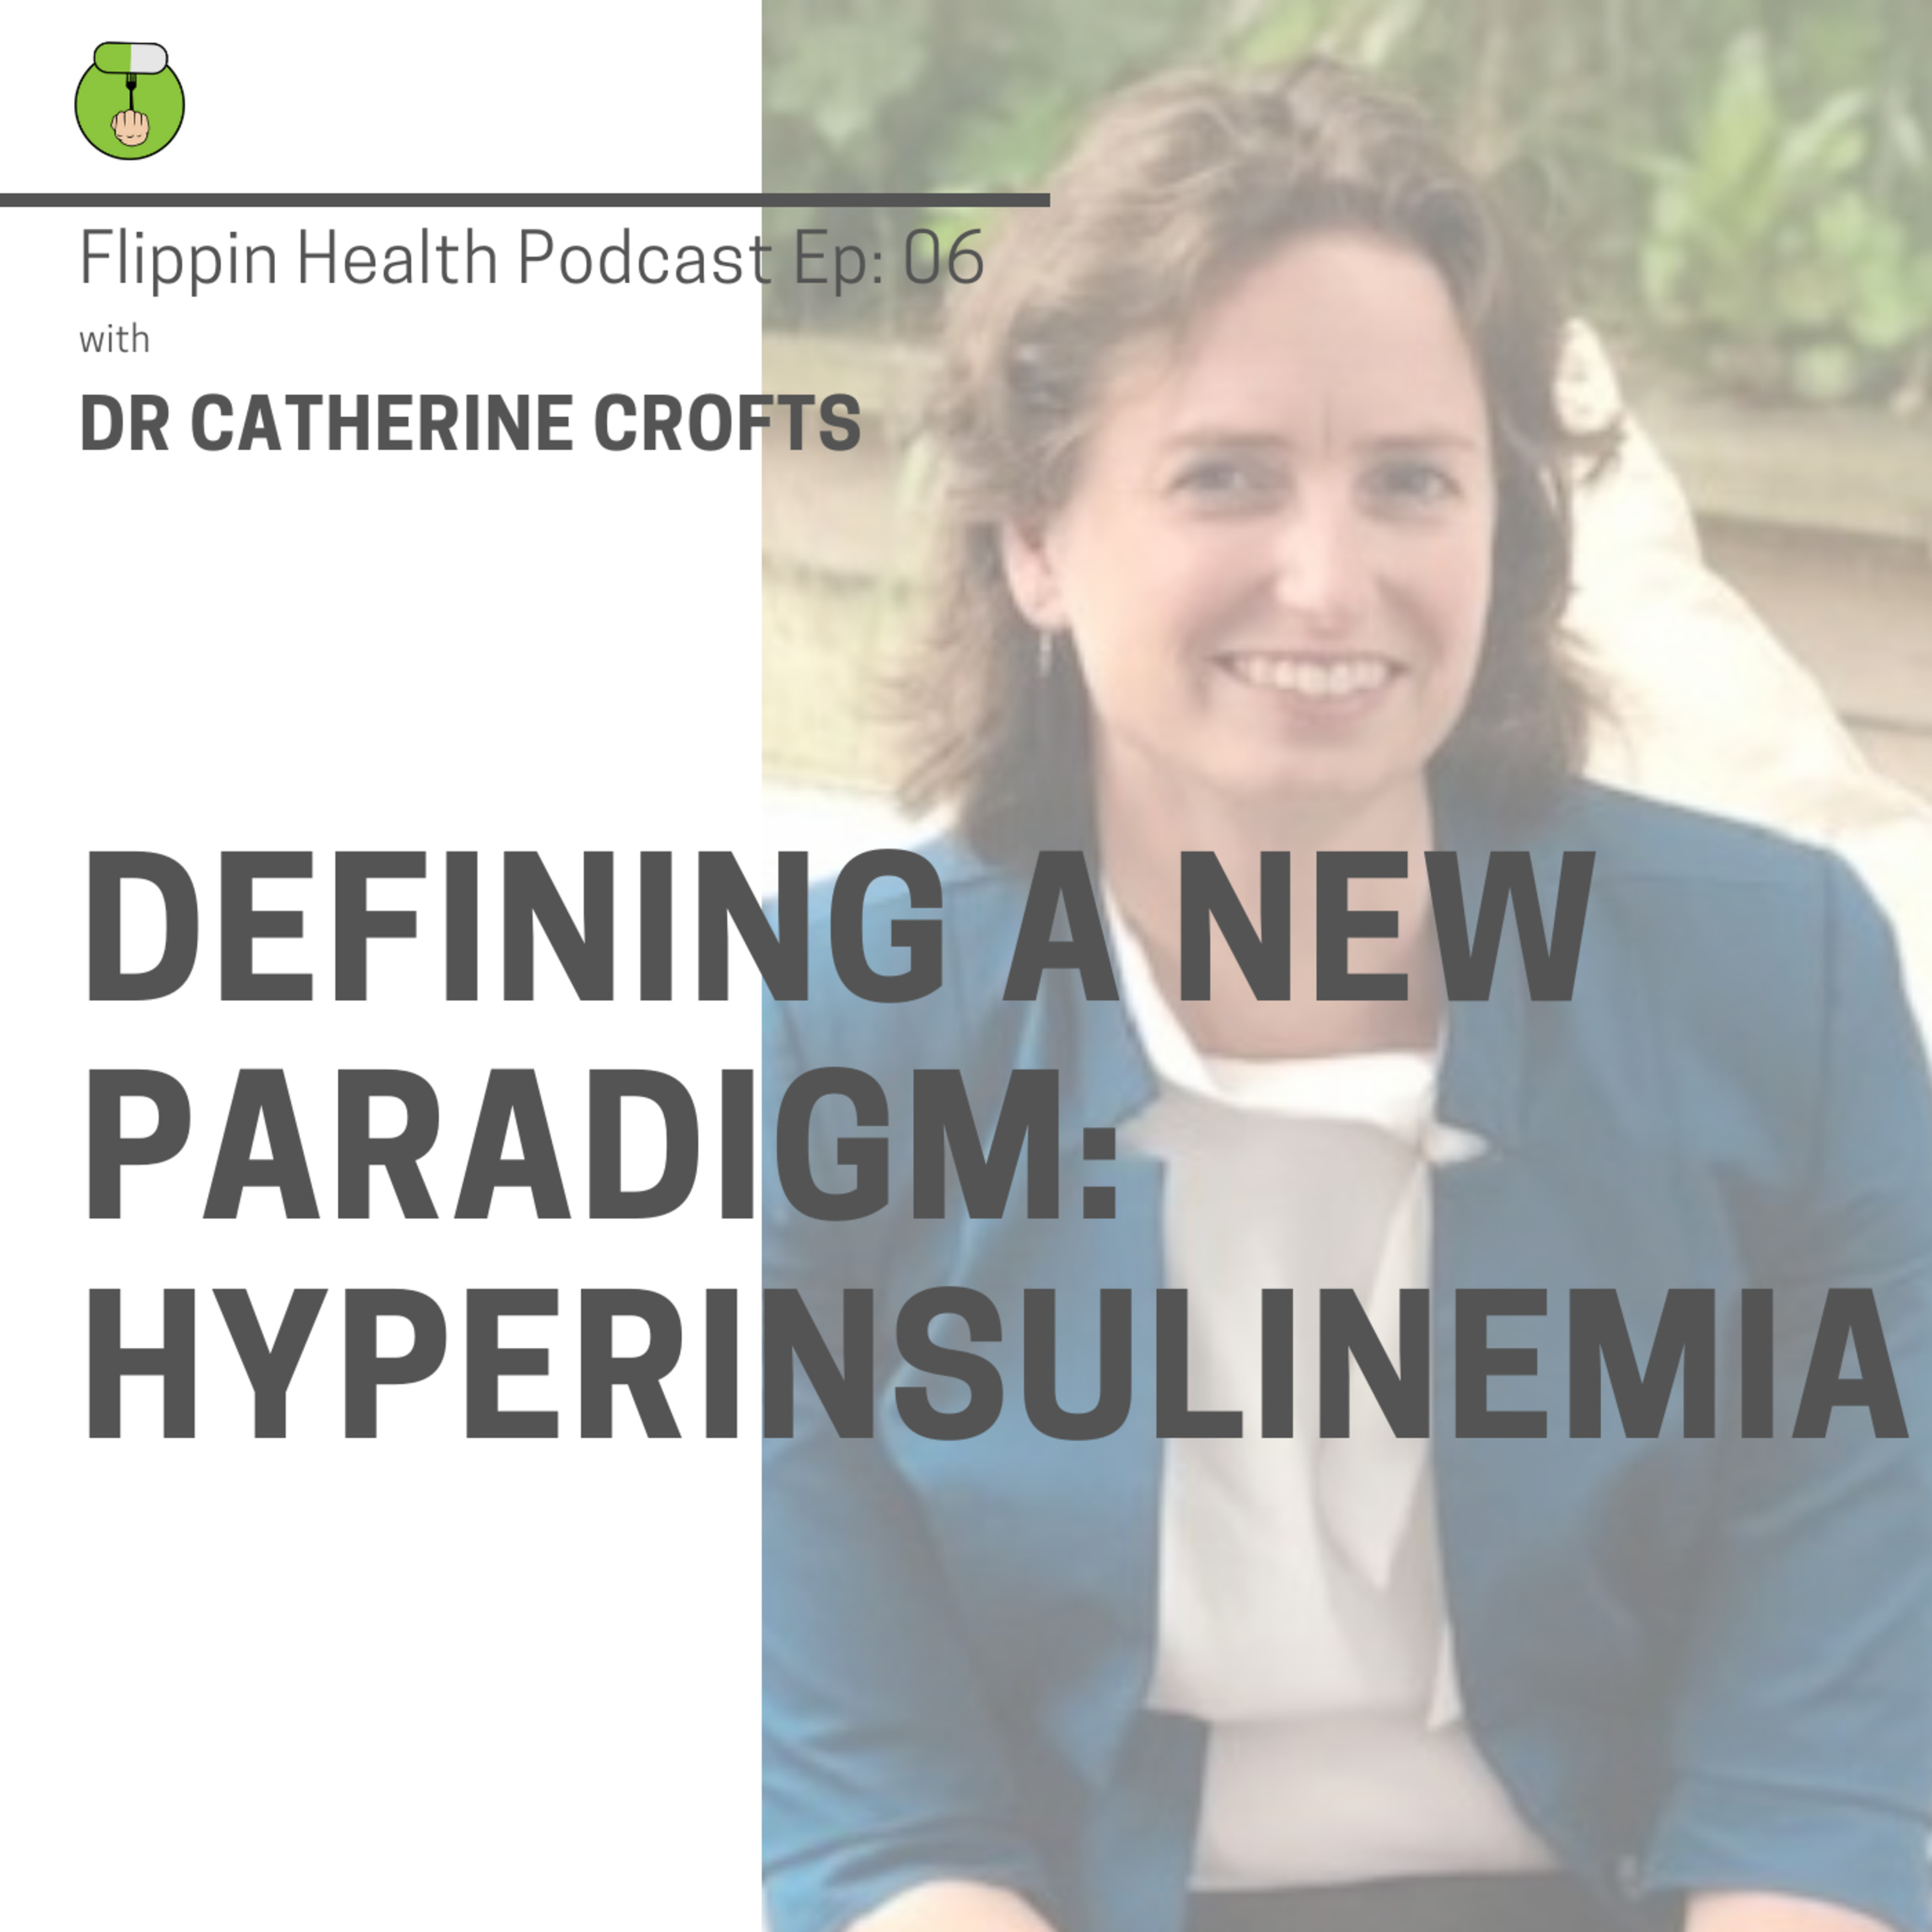 Defining a new paradigm - hyperinsulinemia